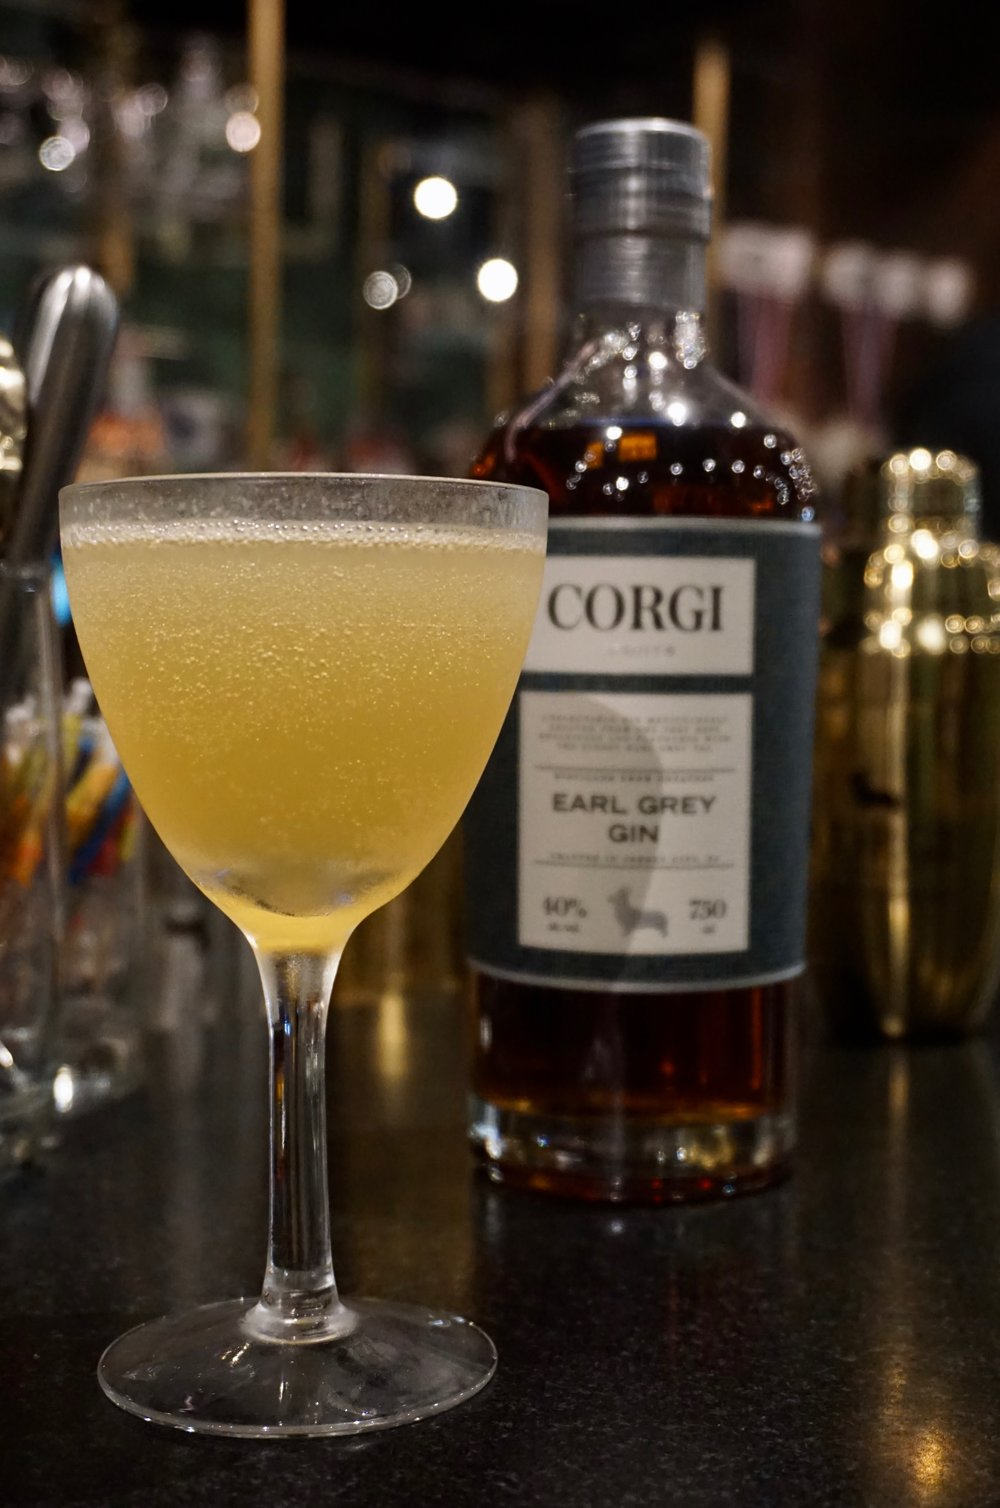 BRIT 75   1oz Corgi Spirits Earl Grey Gin  0.5oz fresh lemon juice  0.5oz simple syrup (1 part sugar : 1 part water)  Sparkling wine  Lemon twist for garnish    Fill a shaker with ice, add gin, lemon juice, syrup and shake vigorously. Strain into a chilled champagne glass and top with sparkling wine. Add lemon twist.